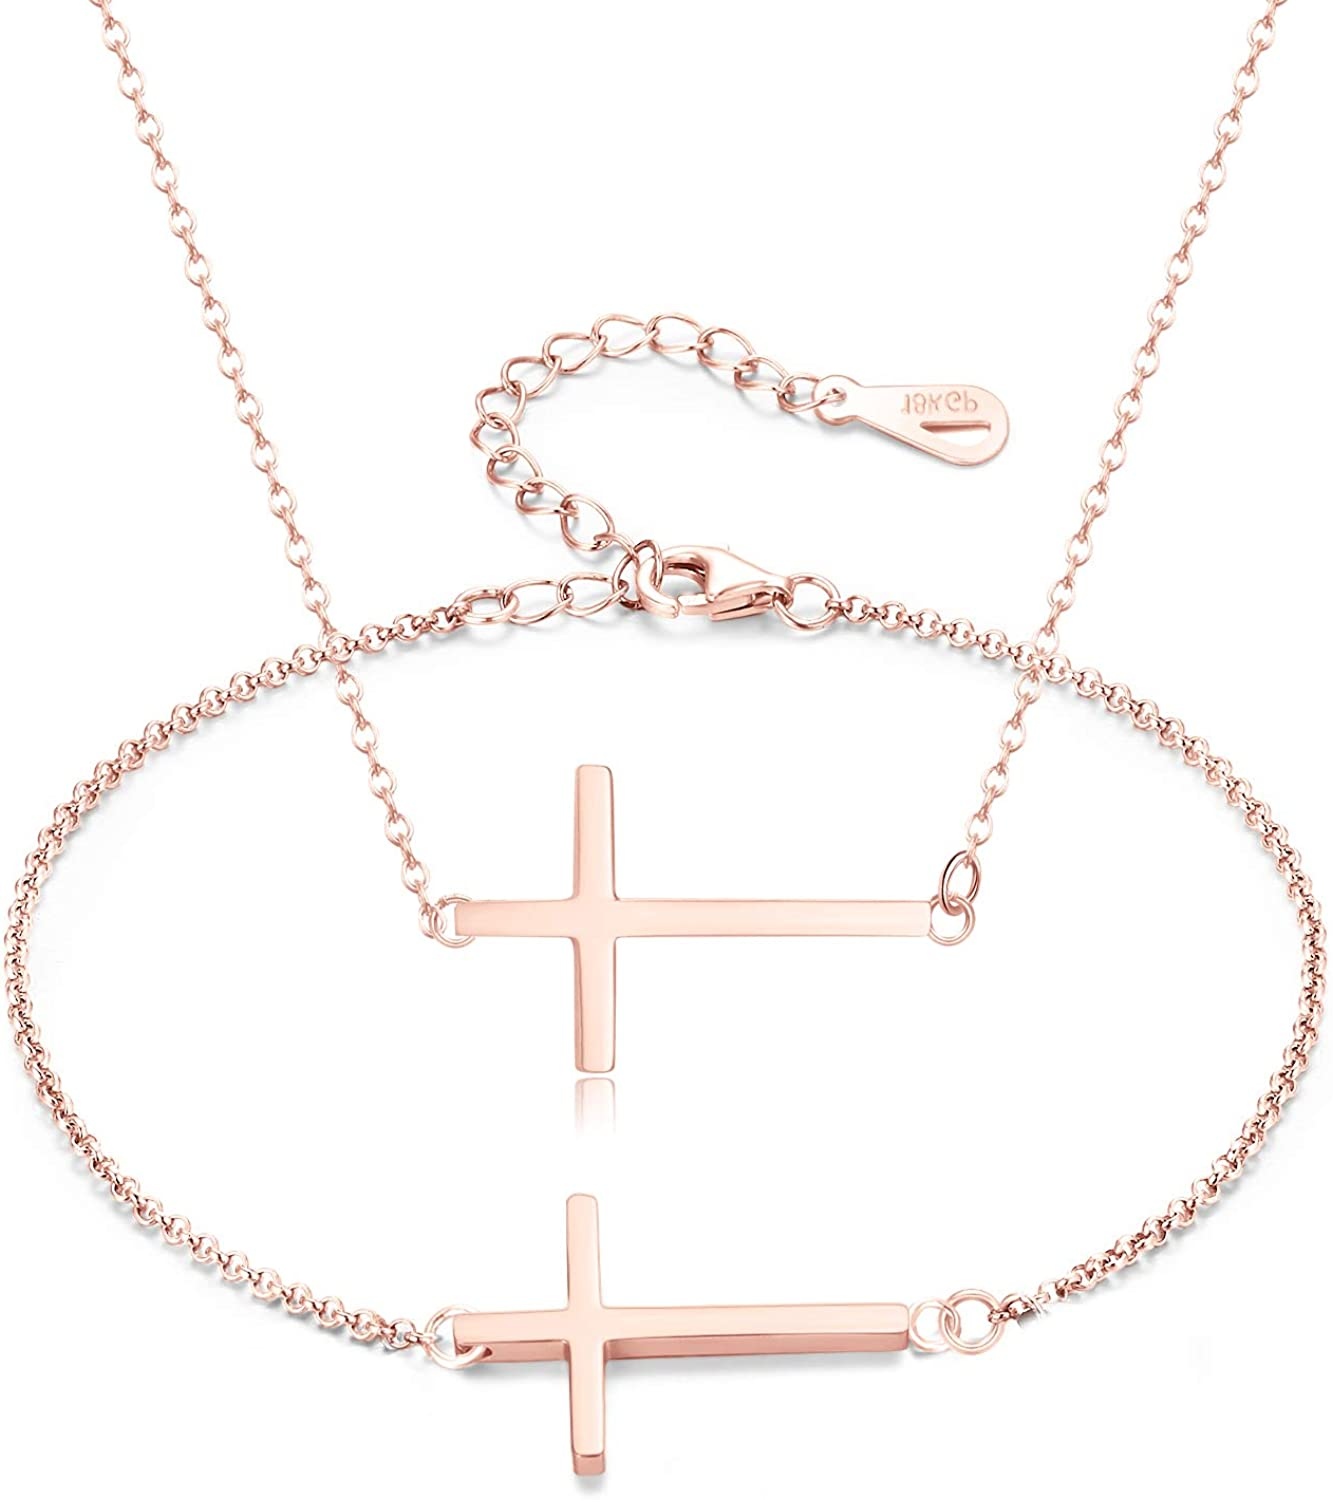 Cross stainless steel necklace and earrings Dainty necklace and earrings set Women/'s necklace Gold necklace Gold Cross jewelry Cross